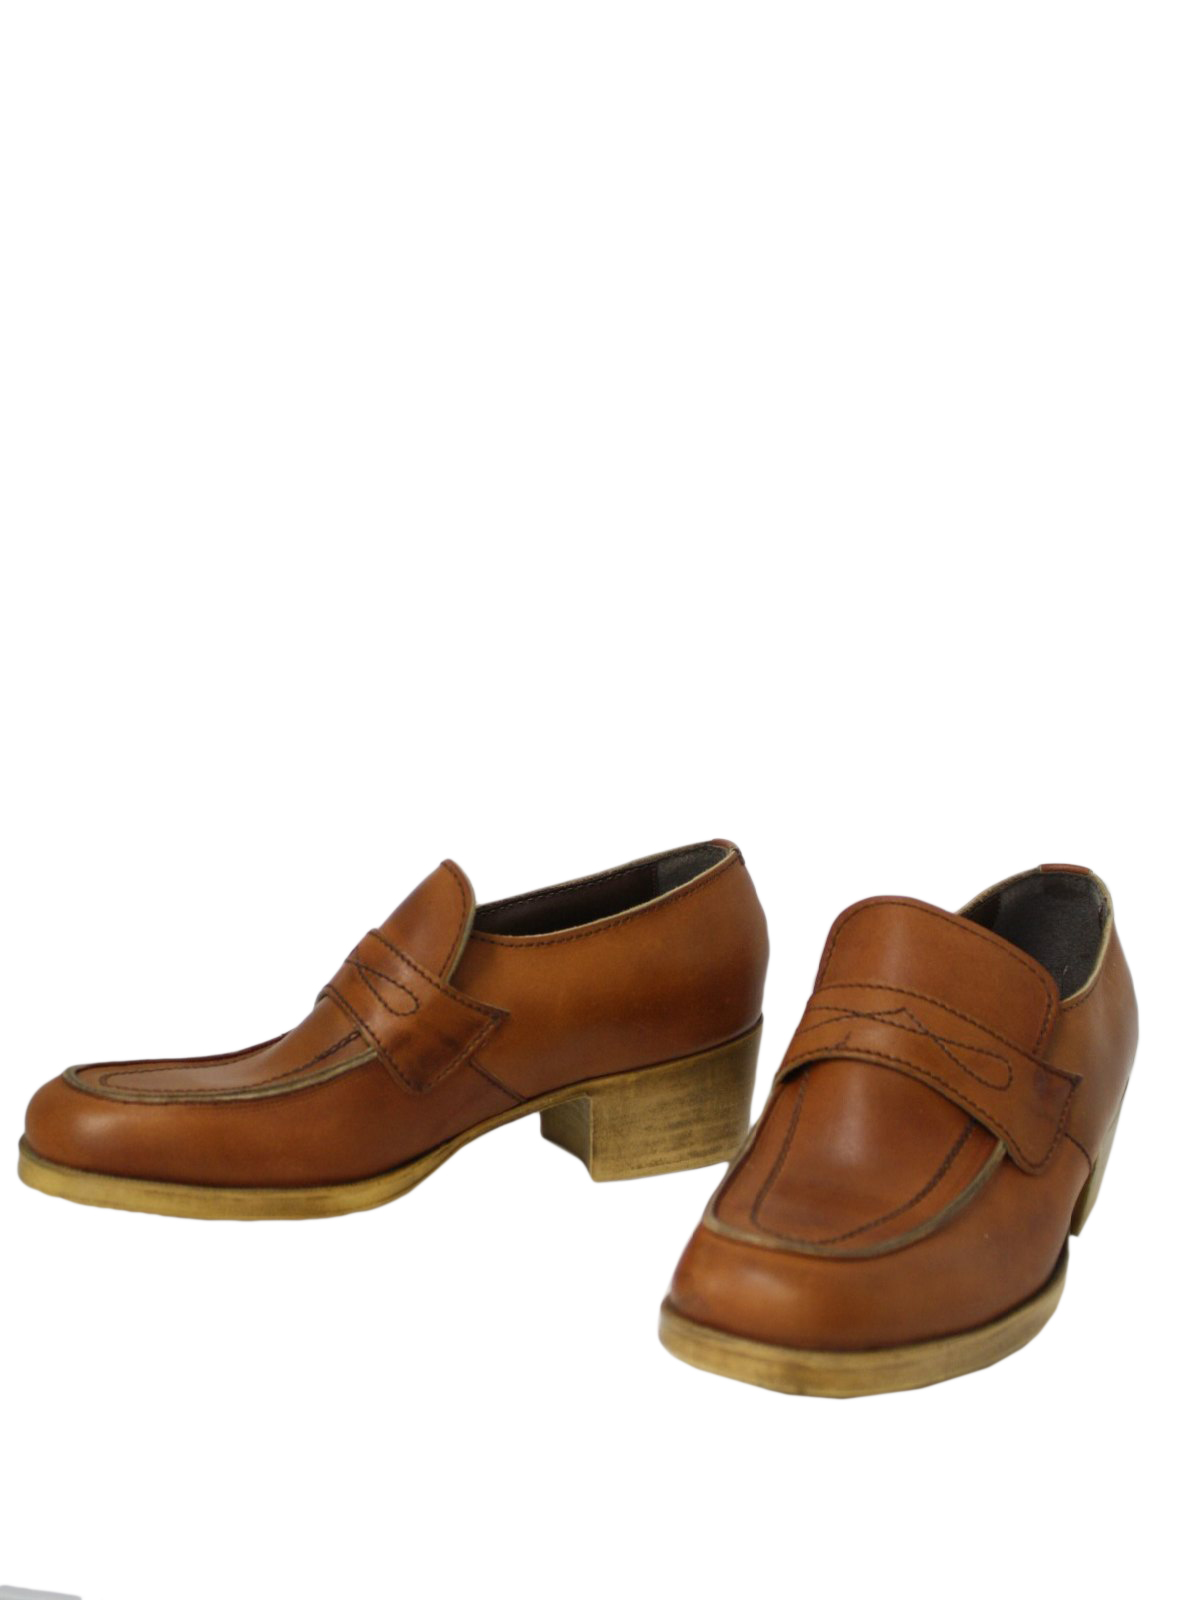 vintage 70s shoes 70s freeman mens brown leather loafer